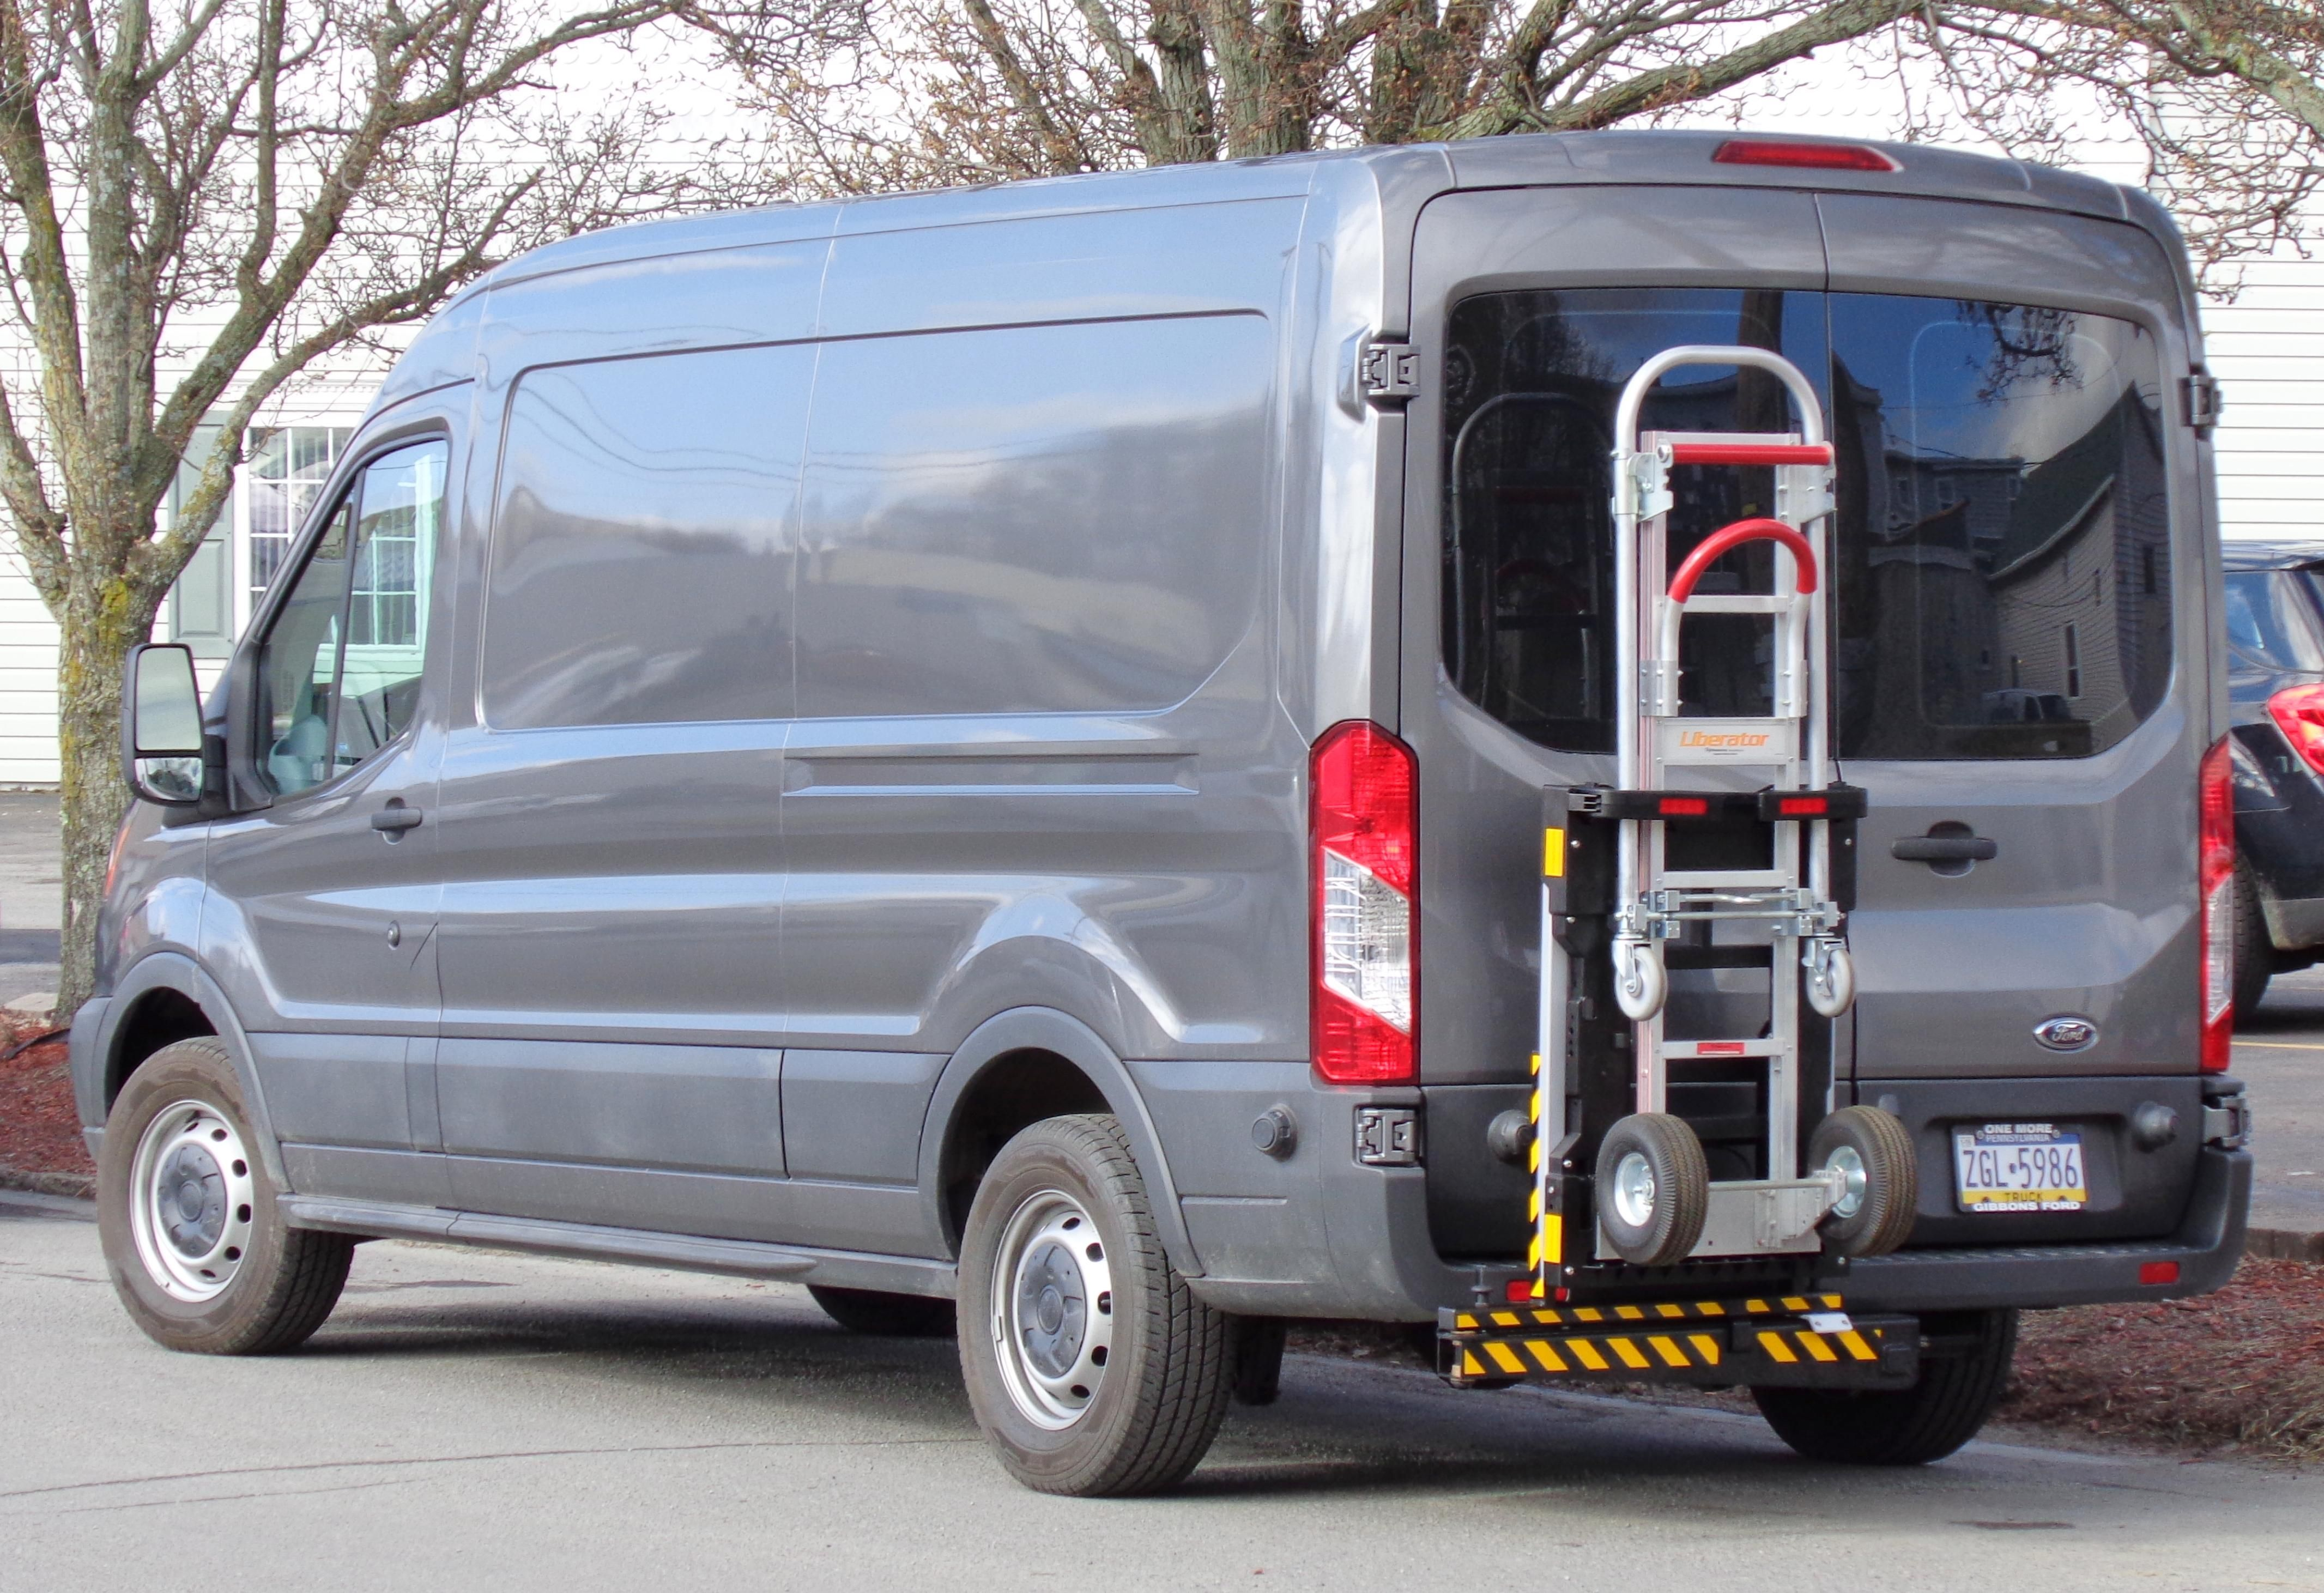 Ford transit 250 commercial cargo delivery van equipped